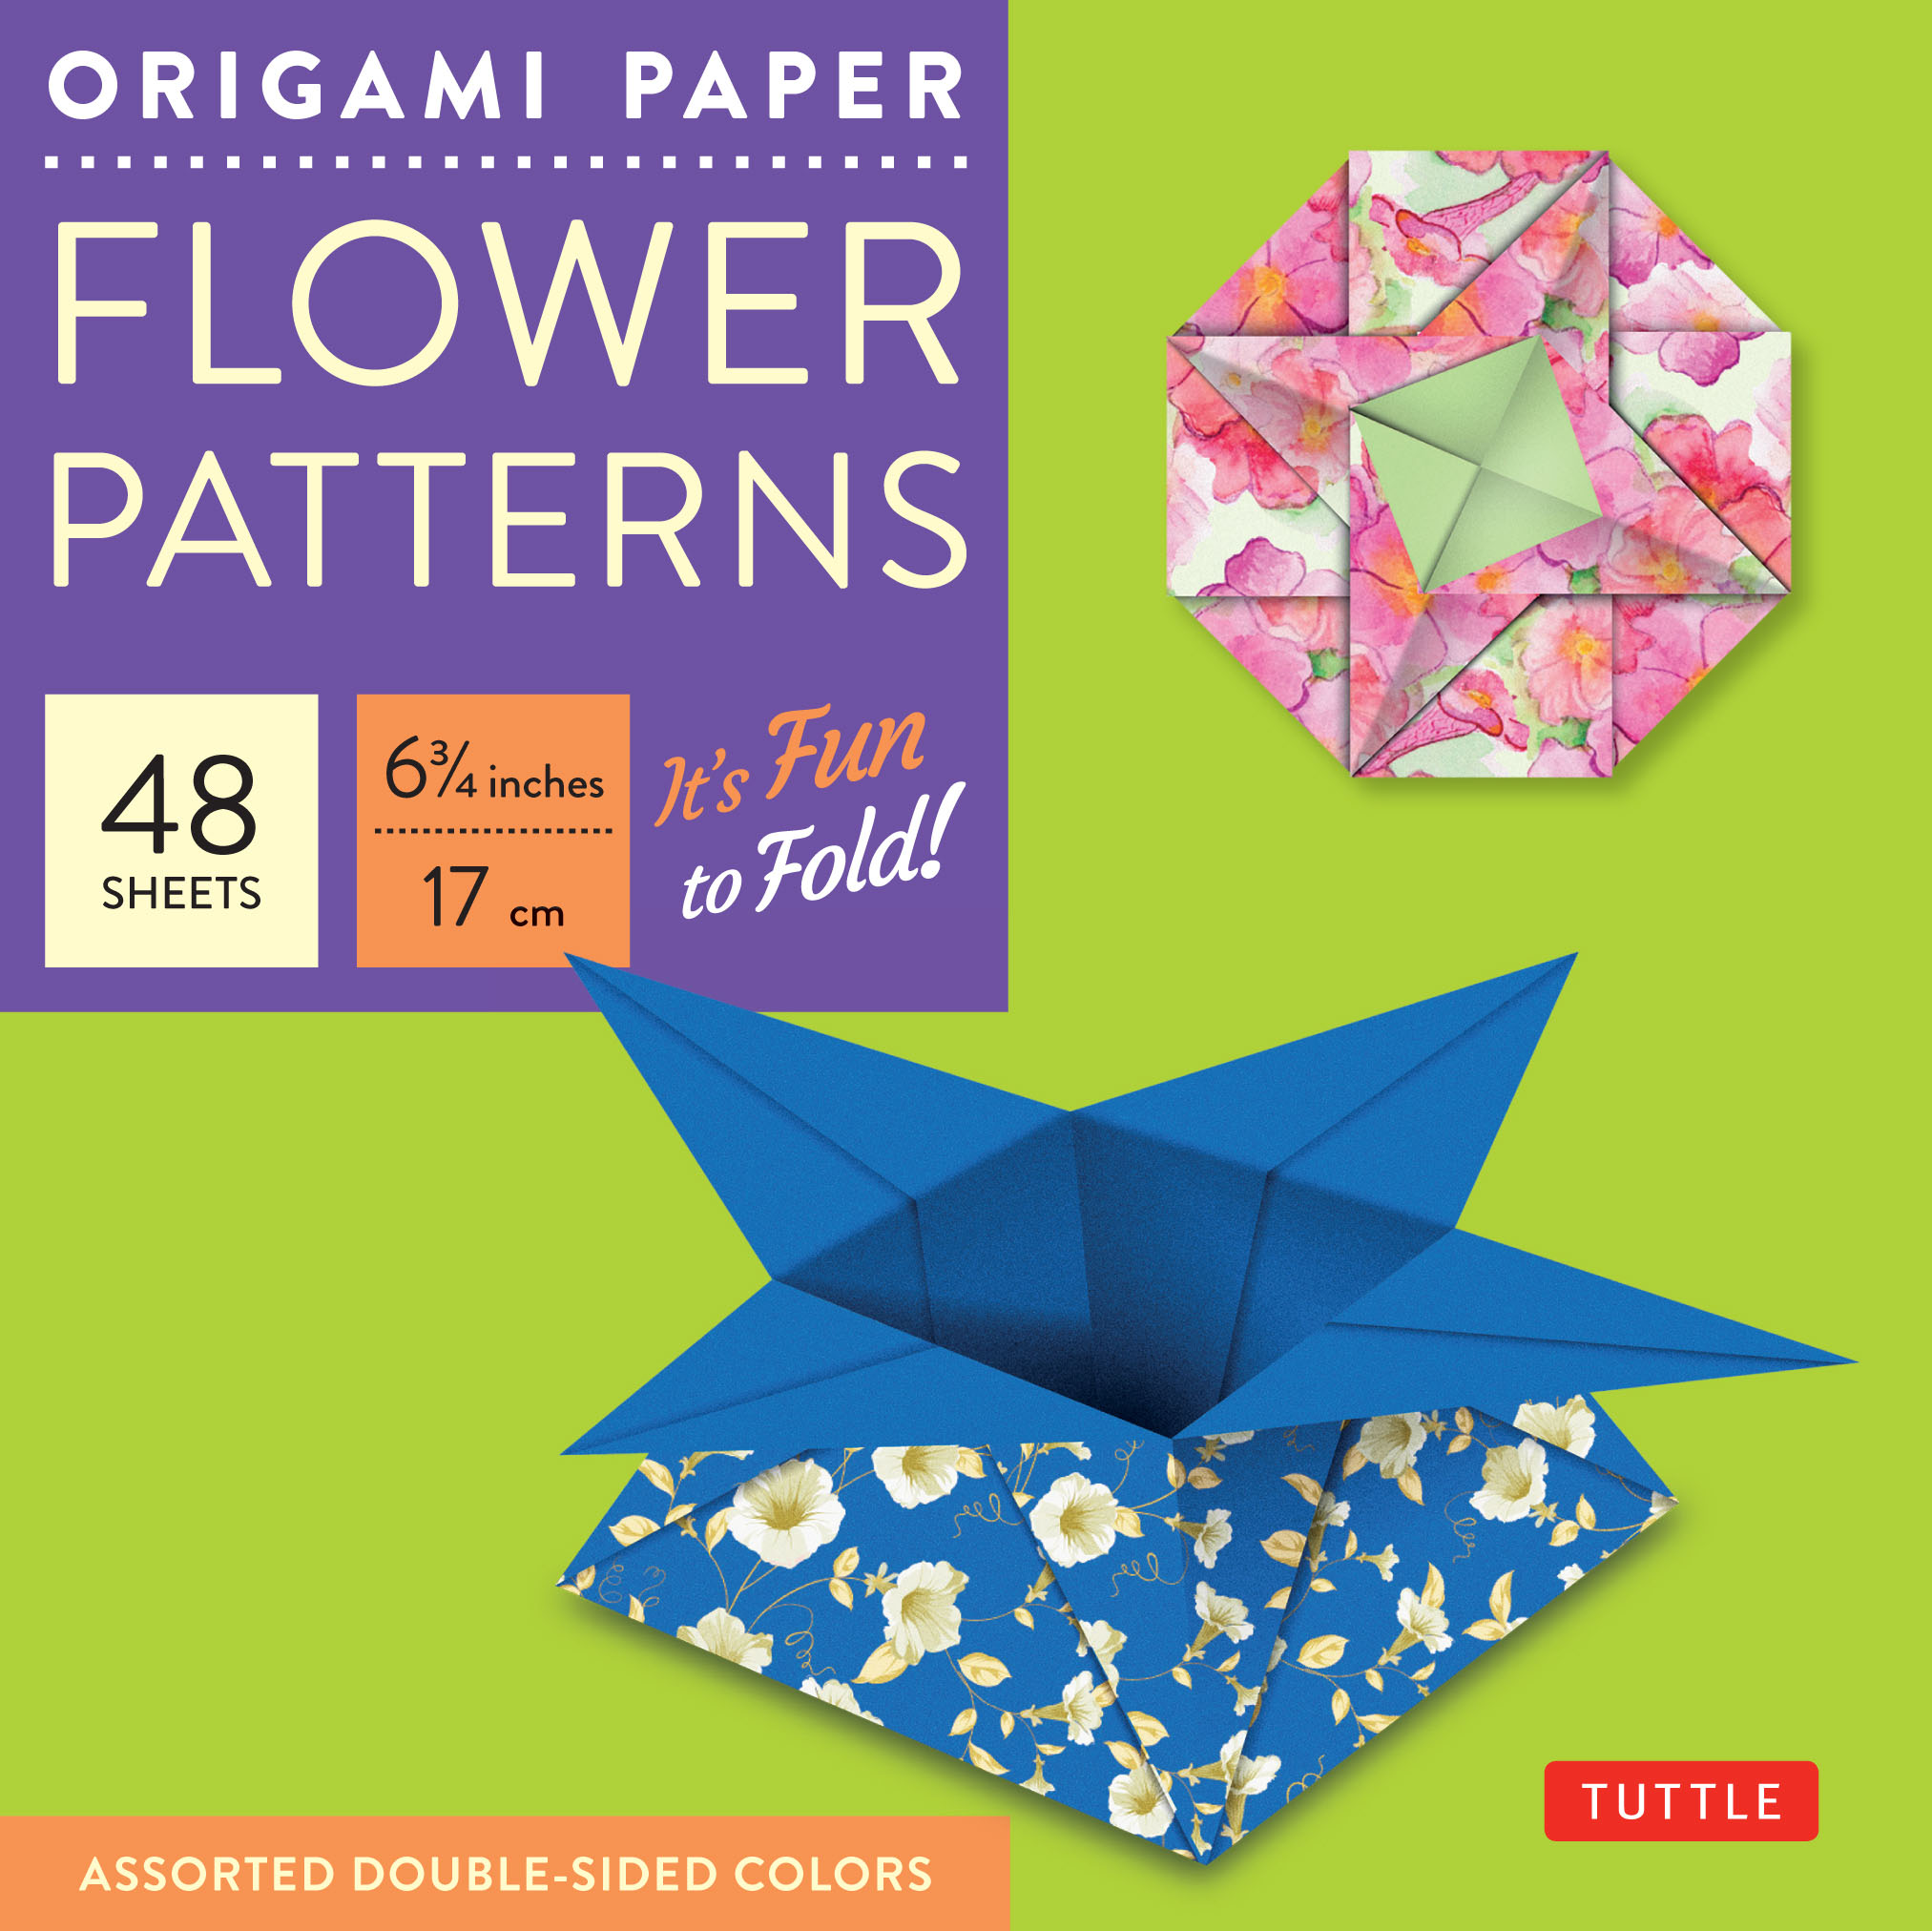 Origami Paper Flower Patterns Newsouth Books